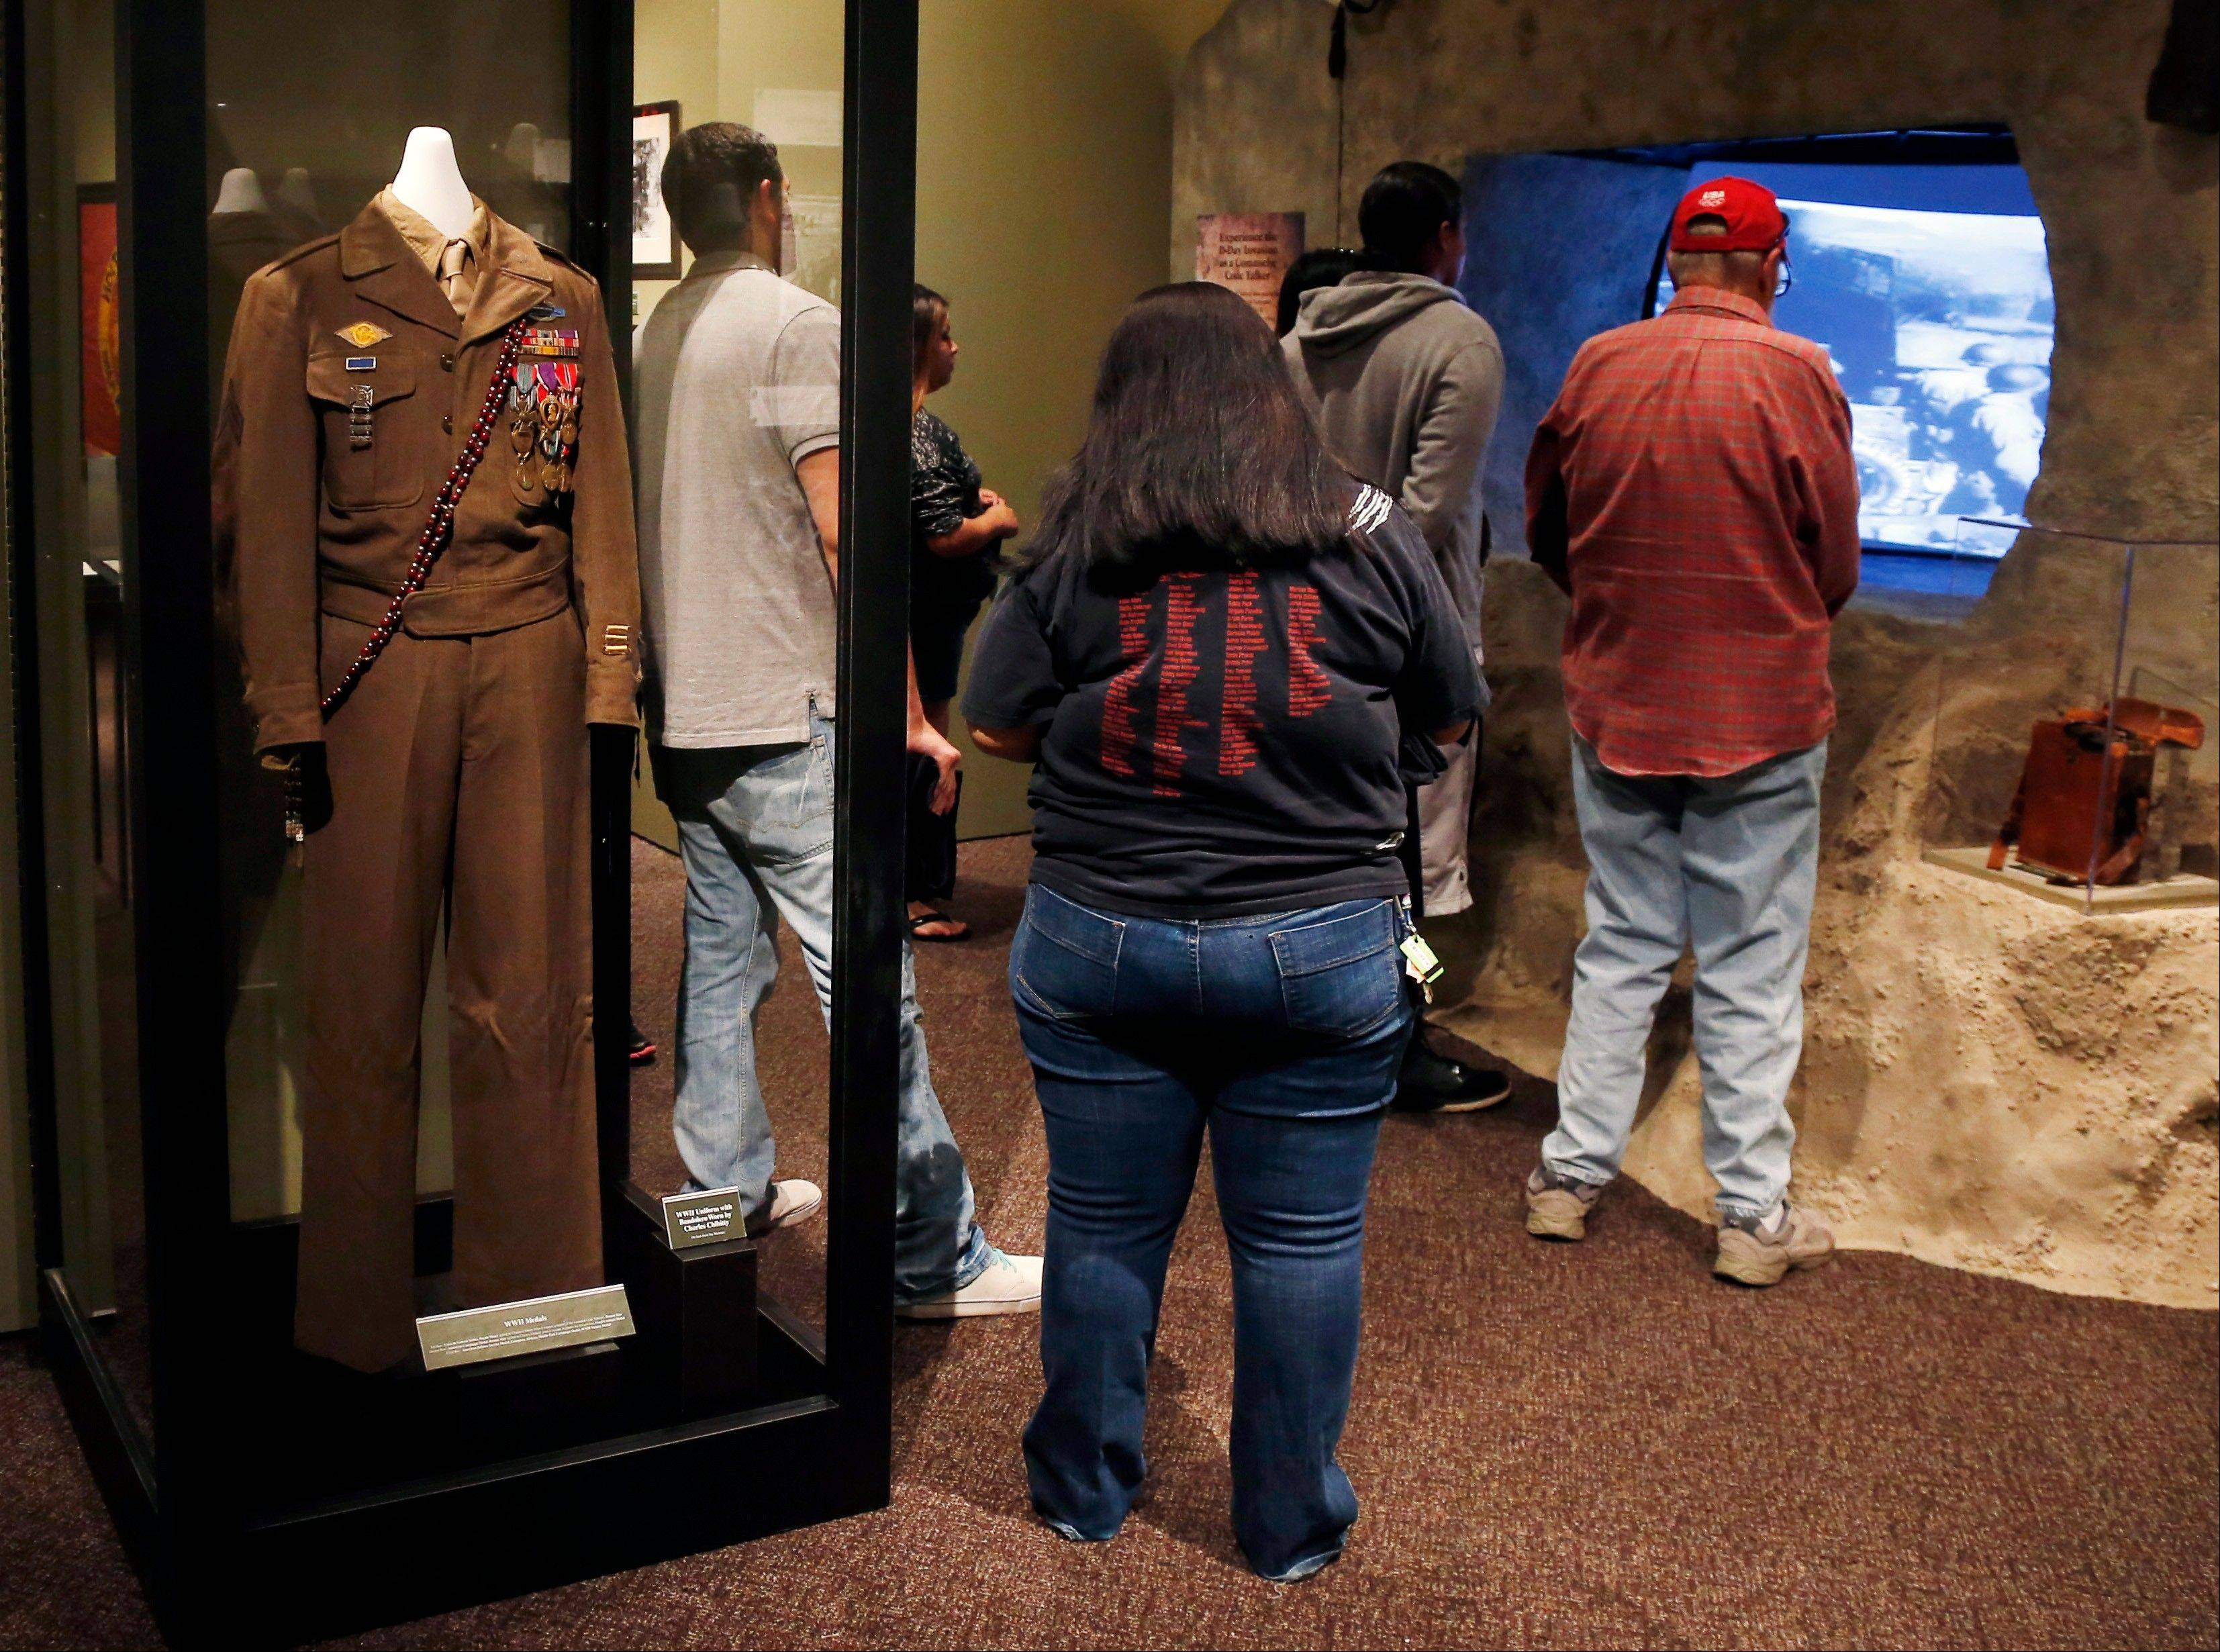 A World War II uniform with the bandolero worn by Comanche Code Talker Charles Chibbity is on display in an exhibit about the code takers at the Comanche National Museum and Cultural Center in Lawton, Okla. Visitors, right, watch a video on the D-Day invasion at Normandy.